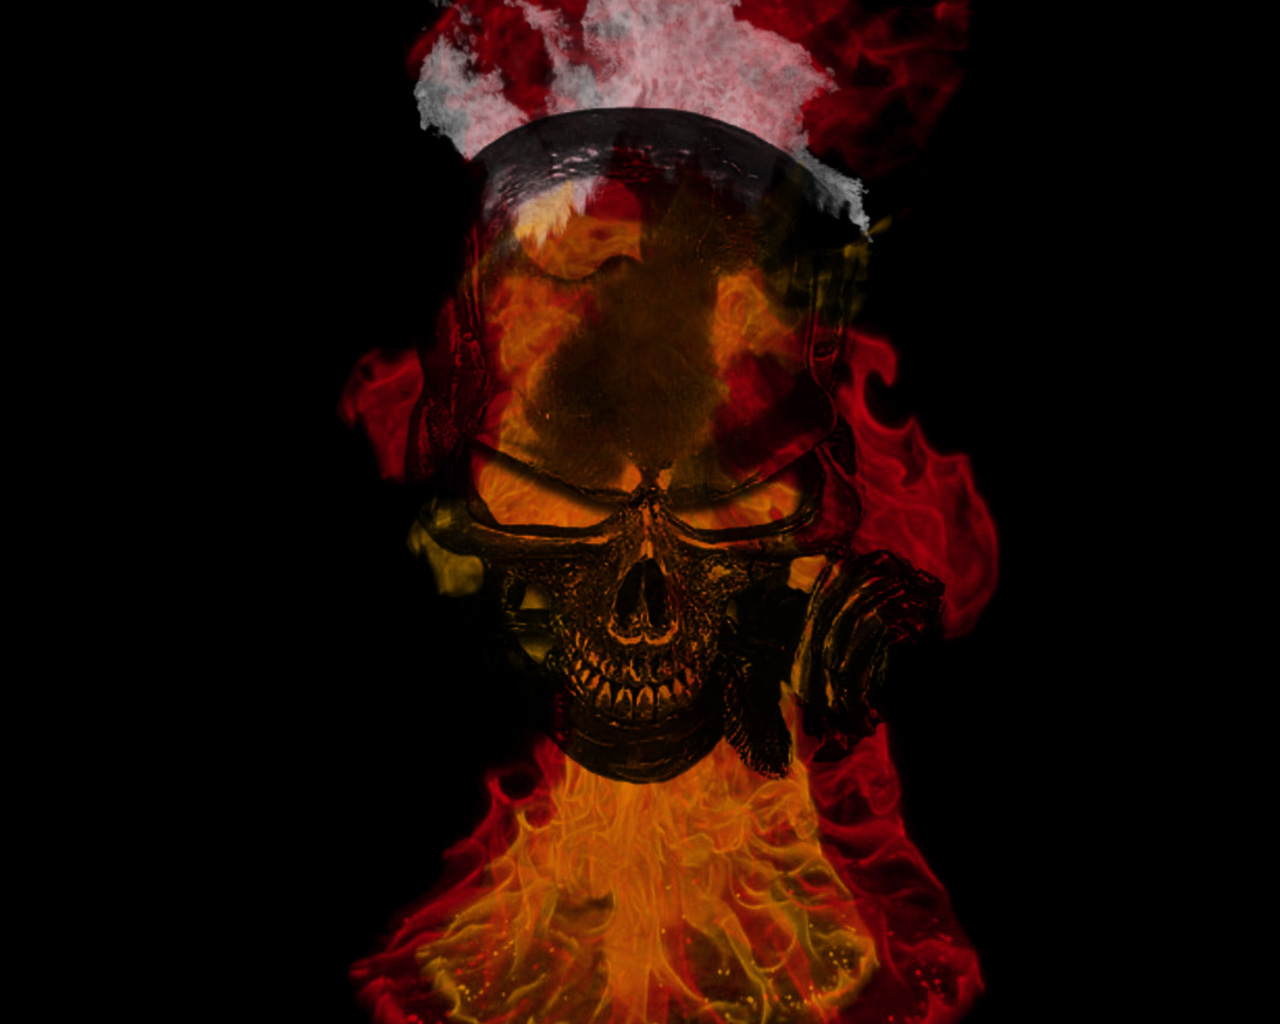 Flaming Skulls Wallpaper Flaming skull 1280x1024